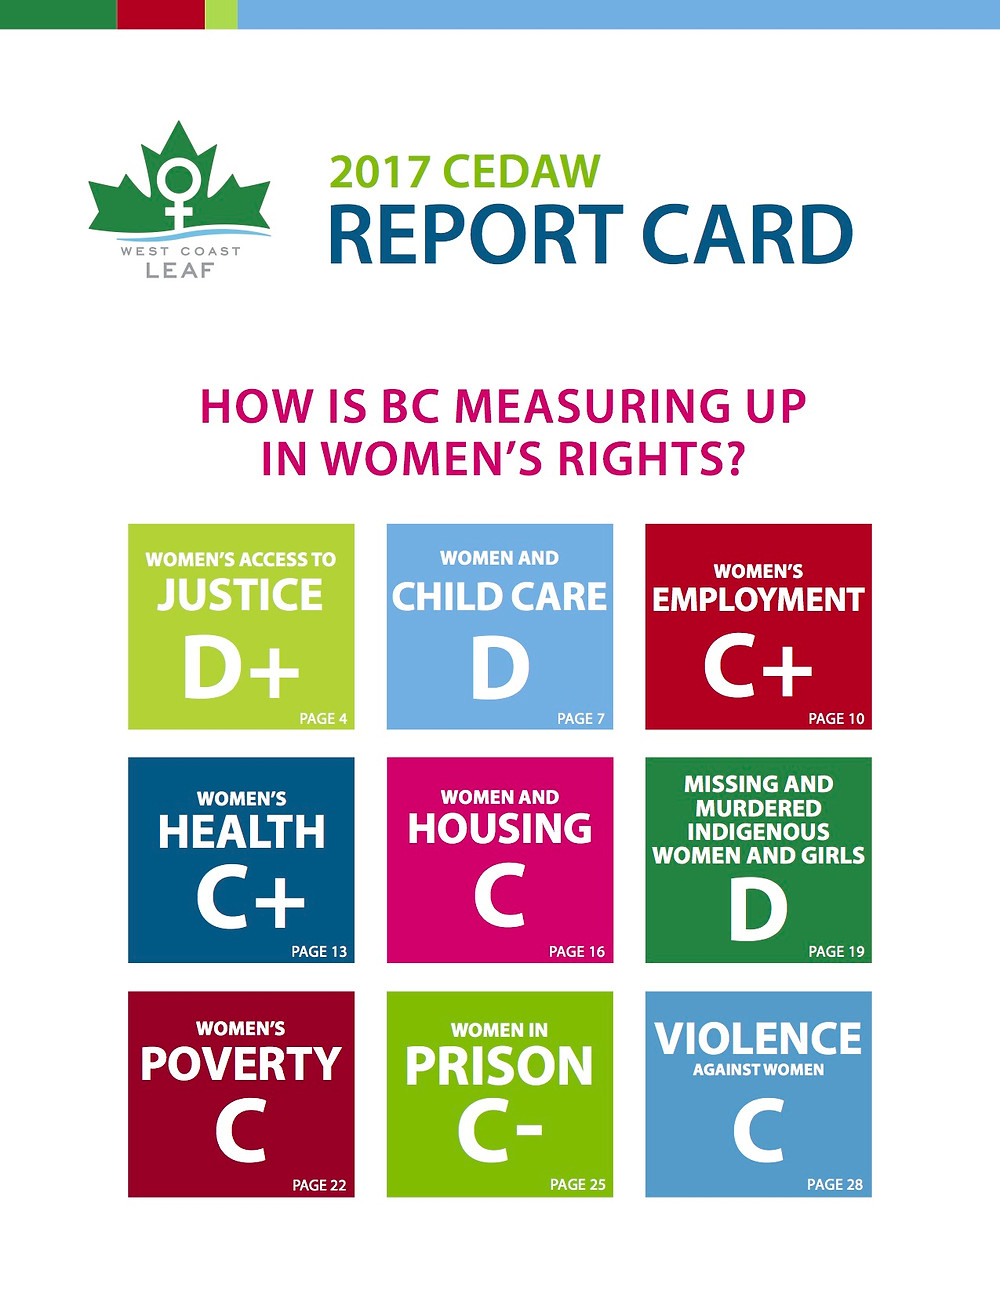 West Coast Leaf Report Card on BC's Women Rights